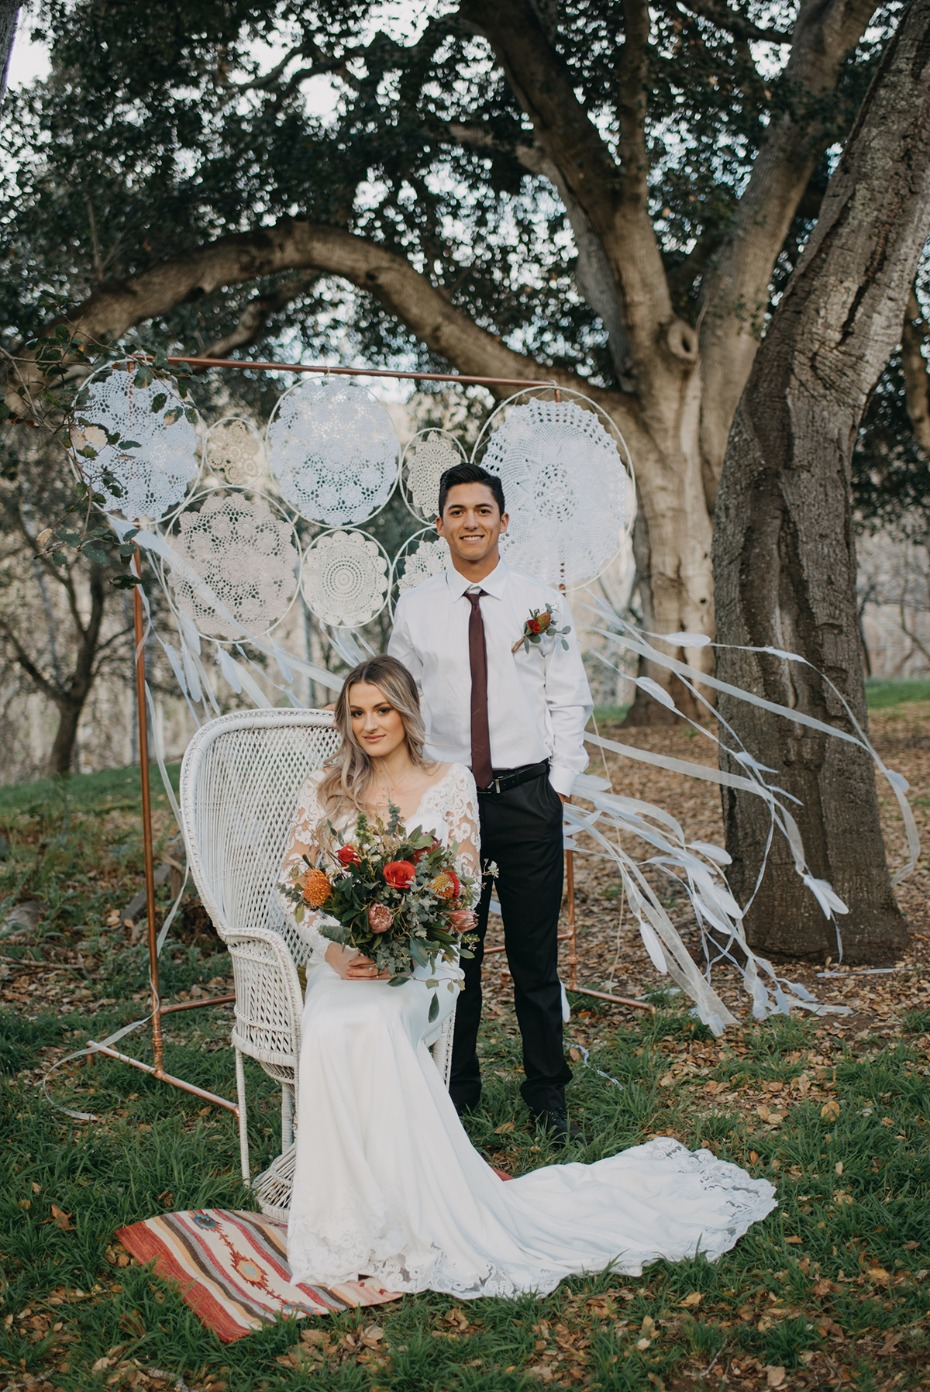 bride and groom with doily dreamcatcher backdrop